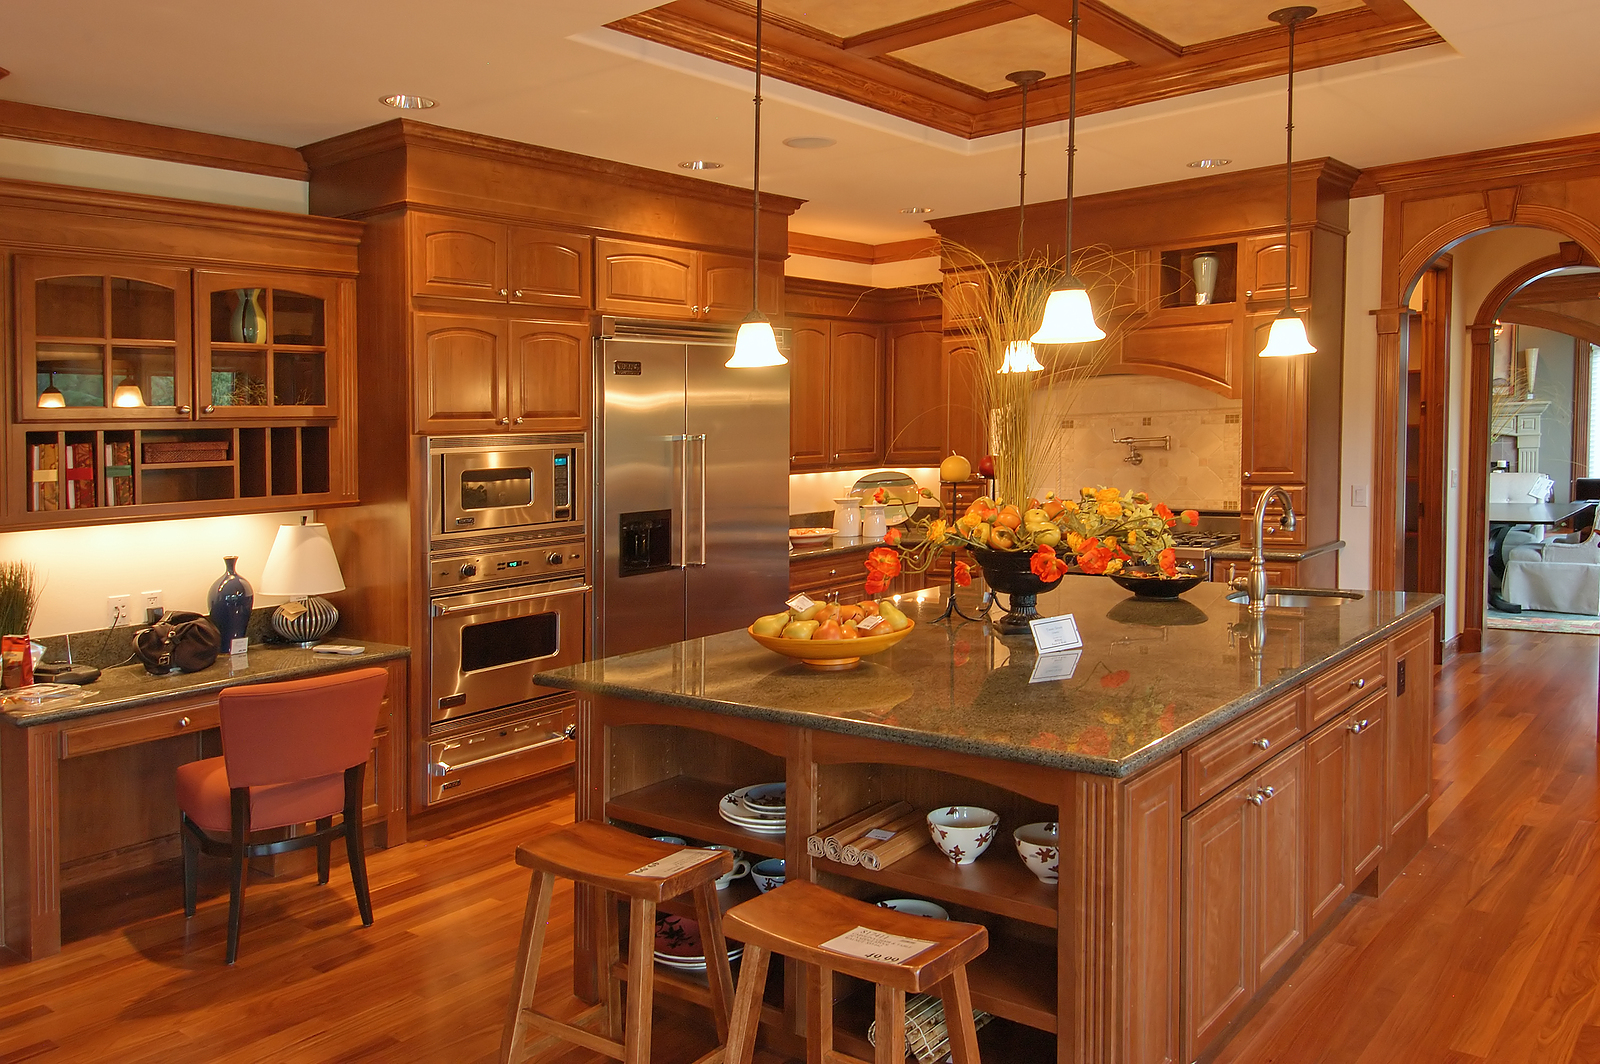 kitchen countertops wooden kitchen countertops Kitchen Countertops